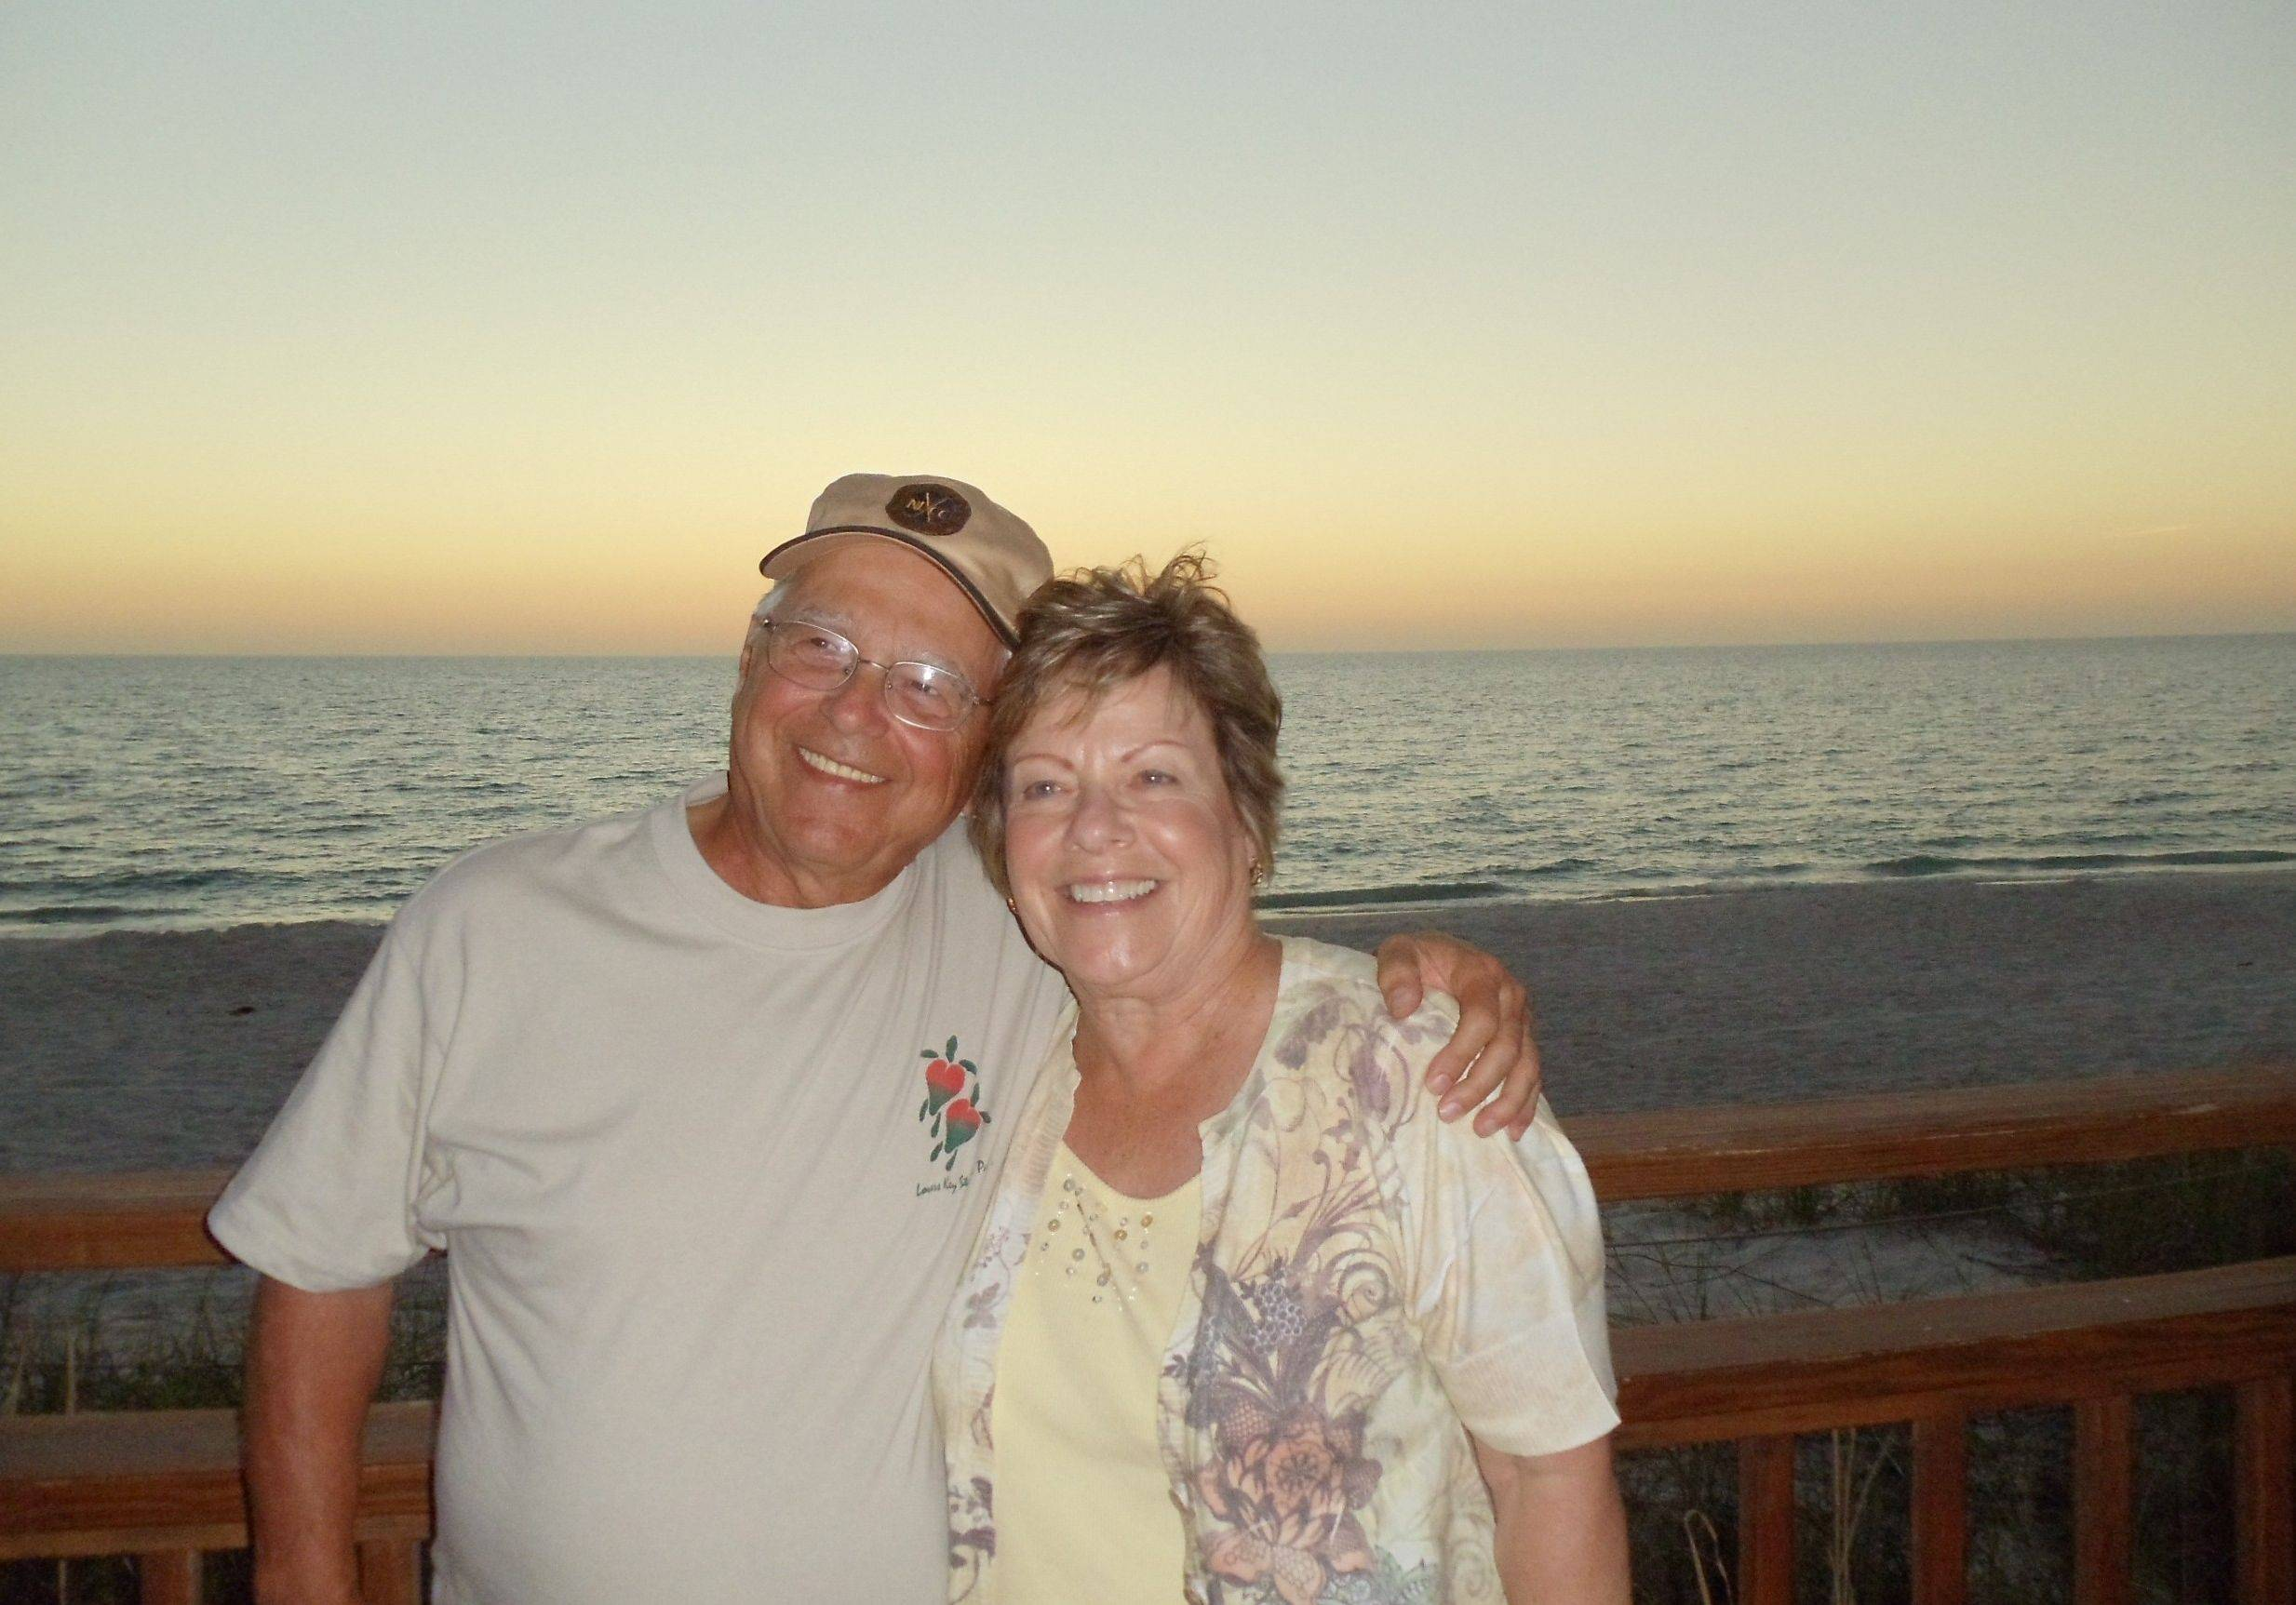 Tom and Mary Porte of Elk Grove Village spend winters in Florida. Recent years have found them in Fort Meyers, though they've also spent time in Naples and Bonita Springs.